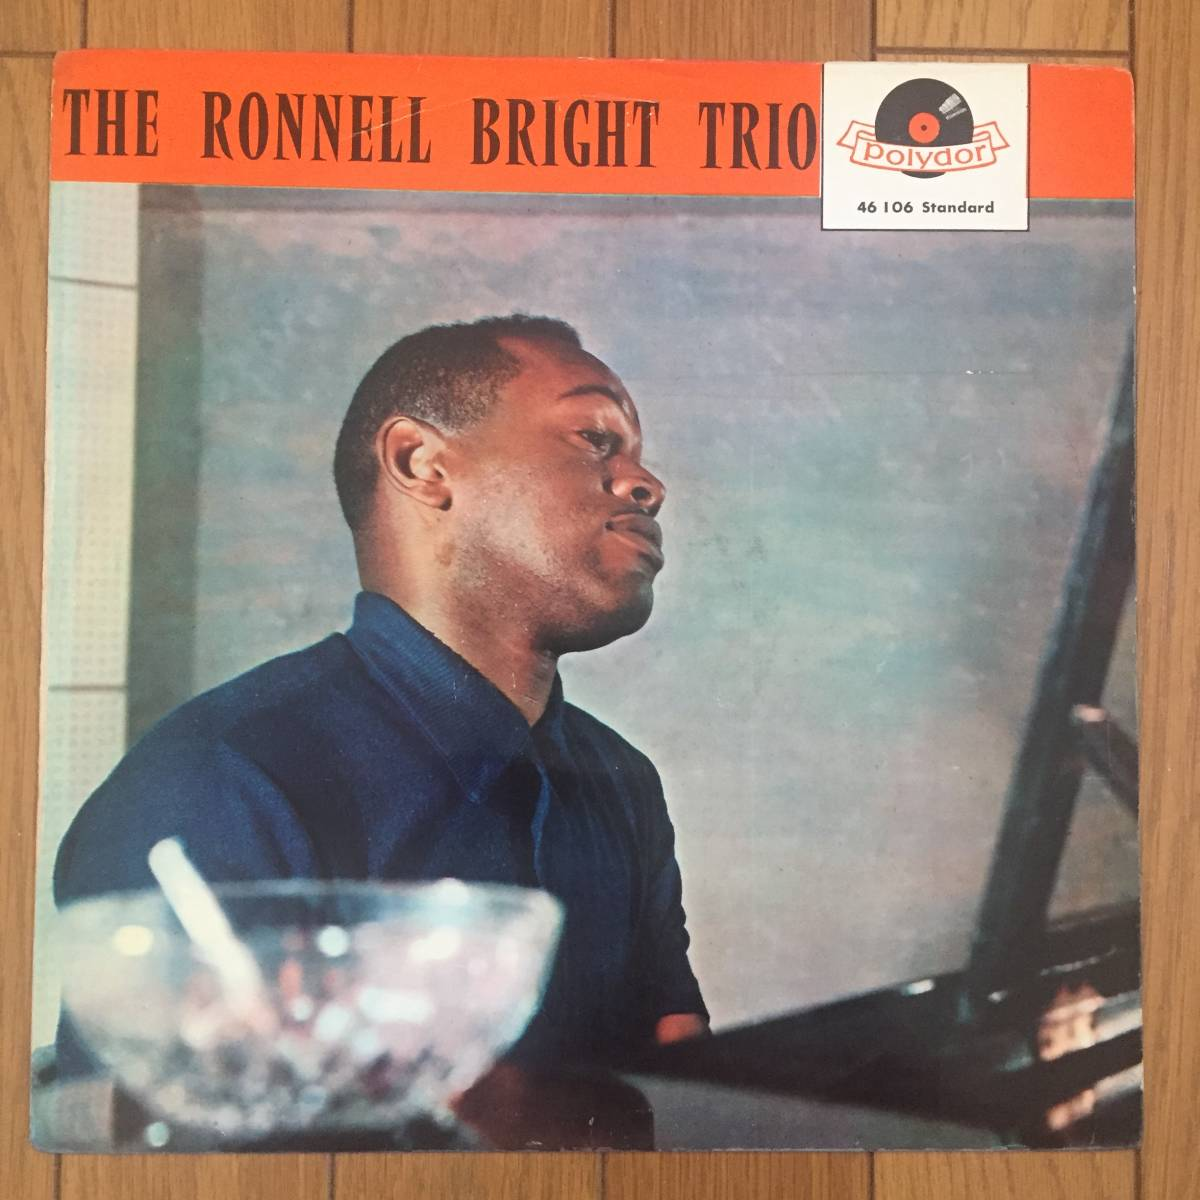 【激レア/France Polydor Original】The Ronnell Bright Trio(Polydor 46 106)